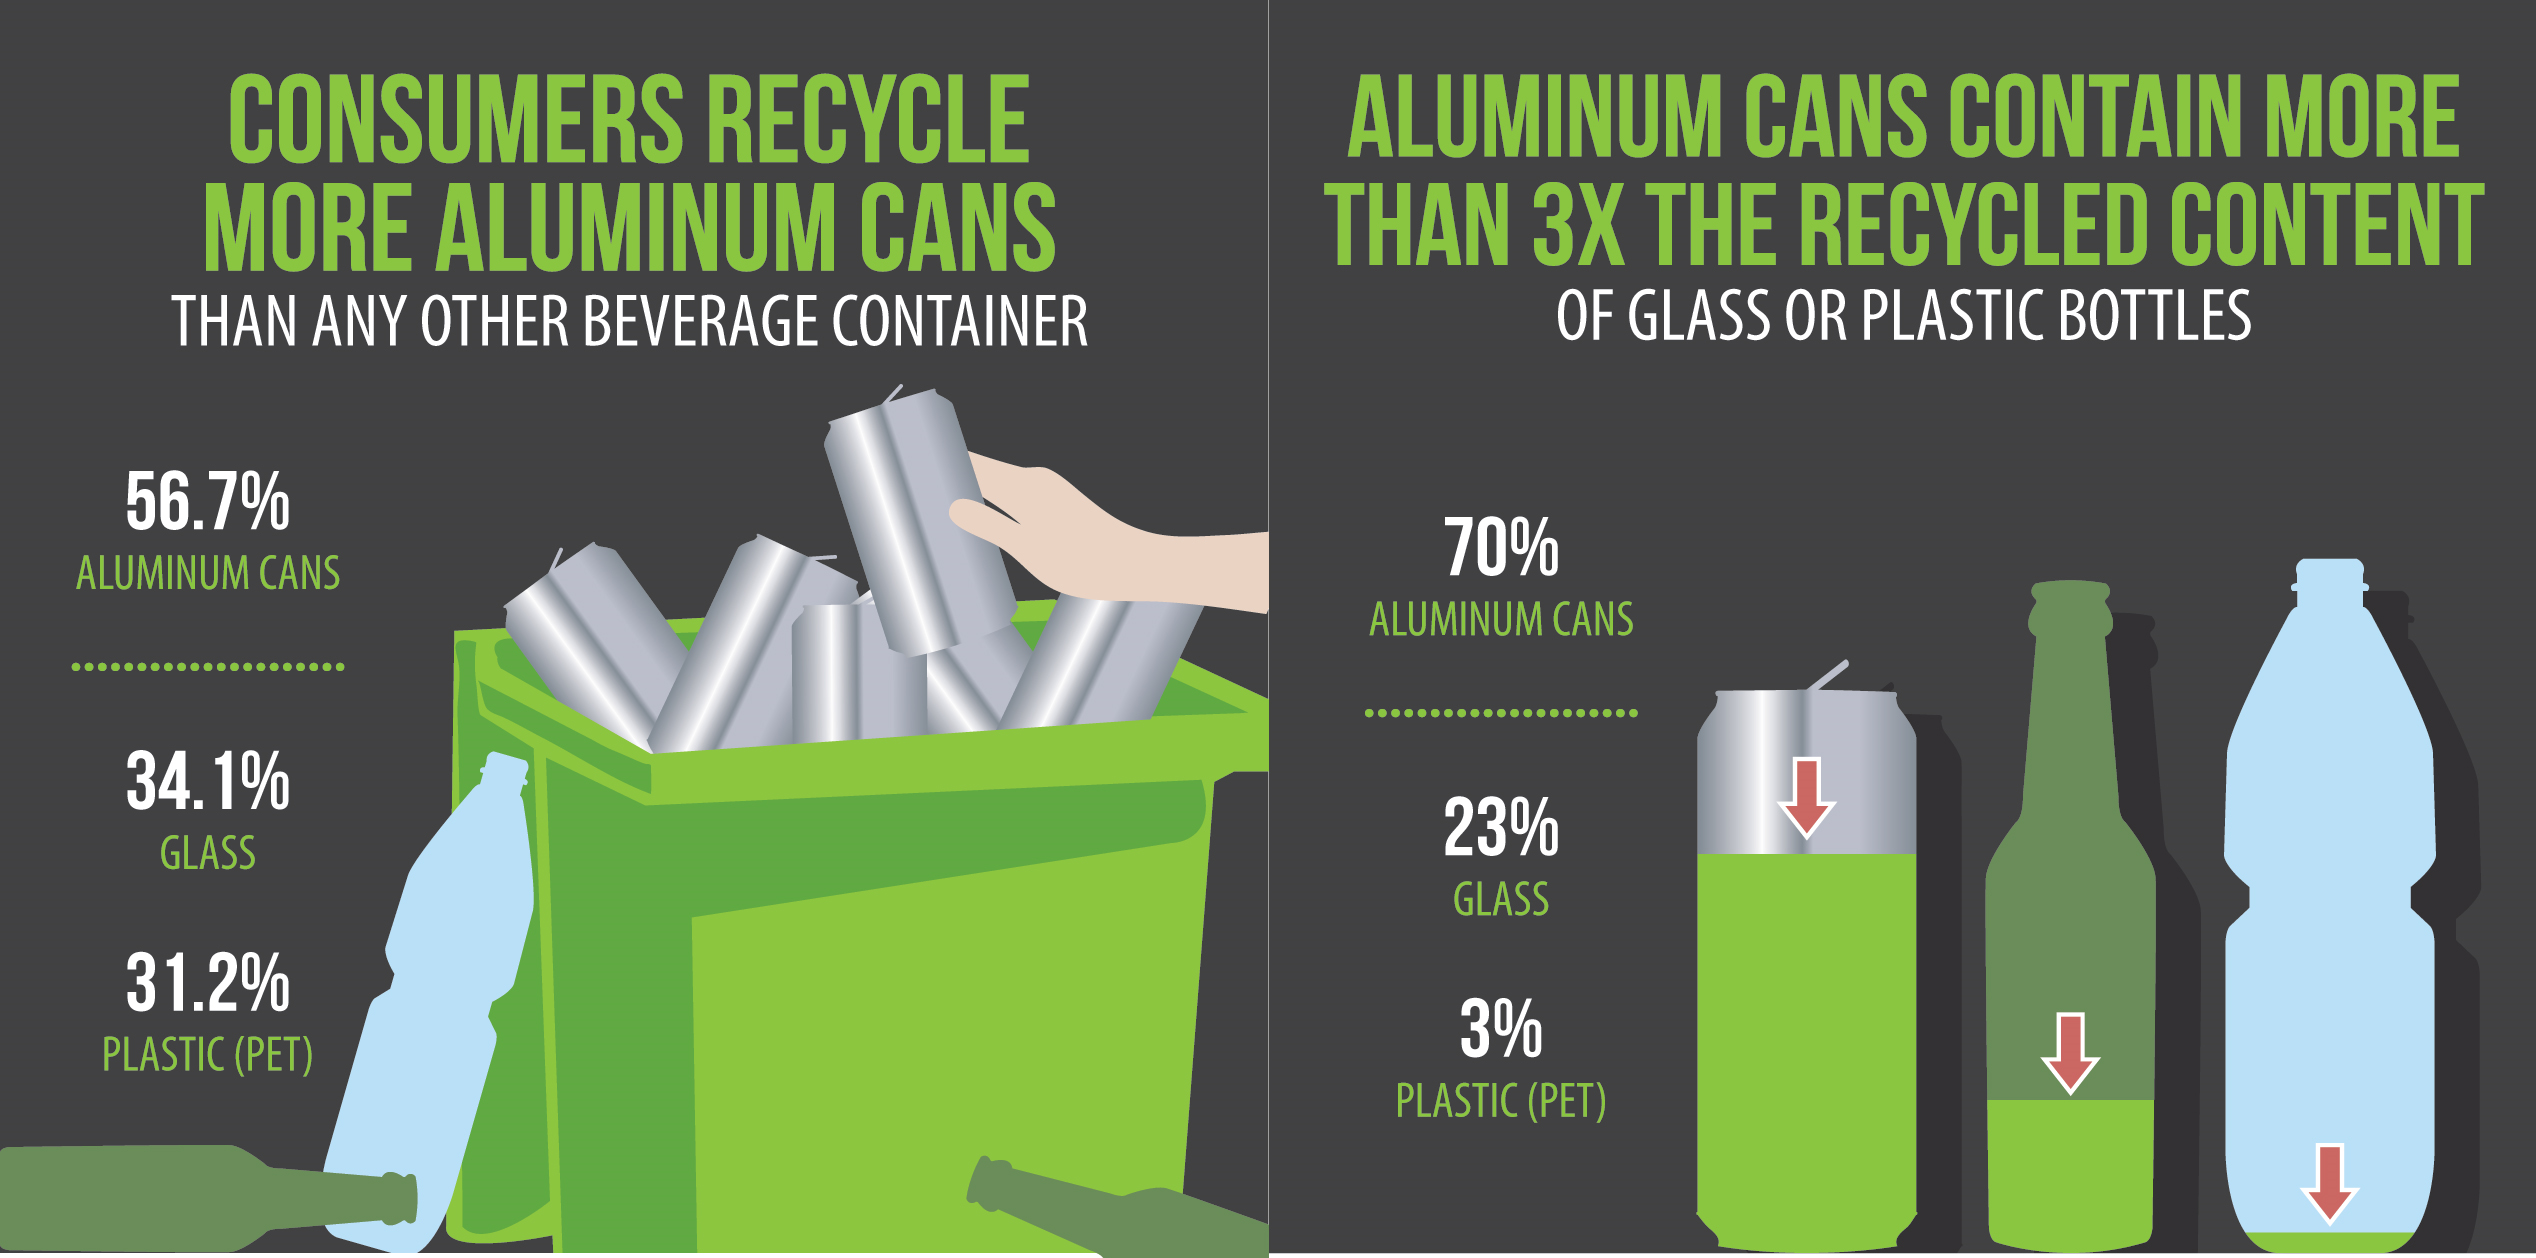 Figure 3. Aluminum beverage cans have high recycling rates and contain higher recycled content than plastic and glass alternatives. (Source: The Aluminum Association.)